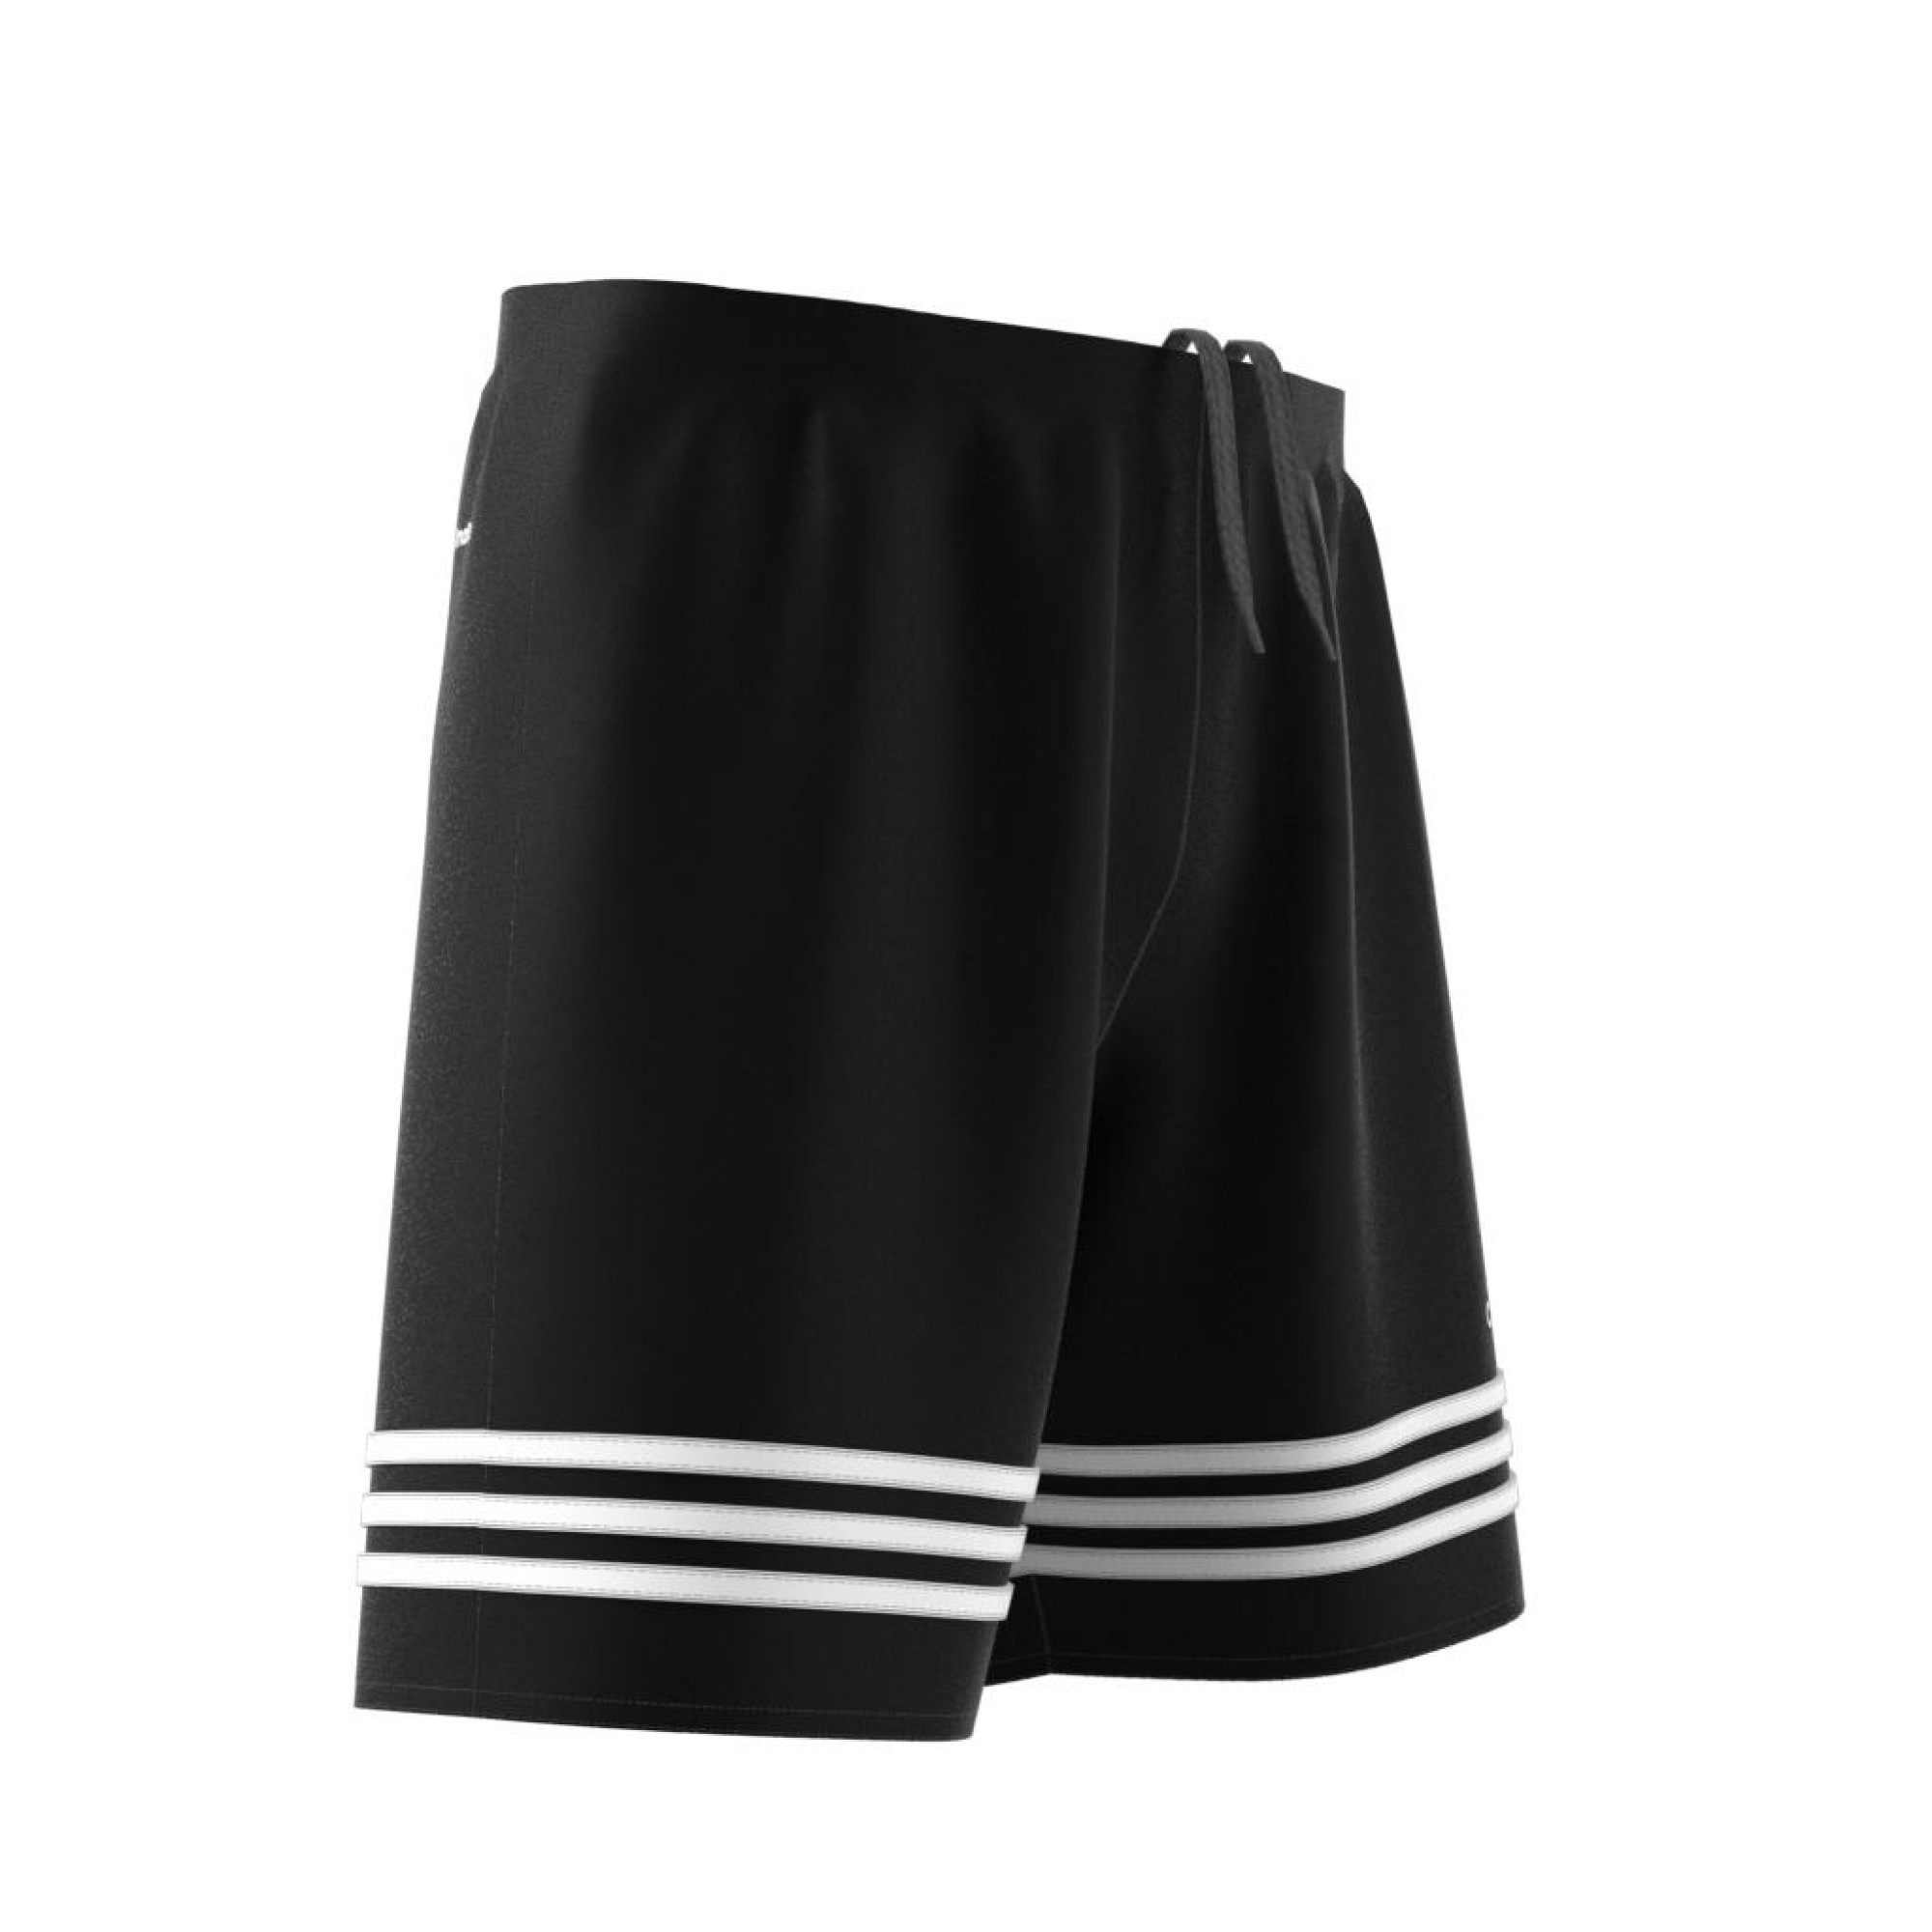 calcio ADIDAS short entrada 14 team black/white f50632 - acquista s...